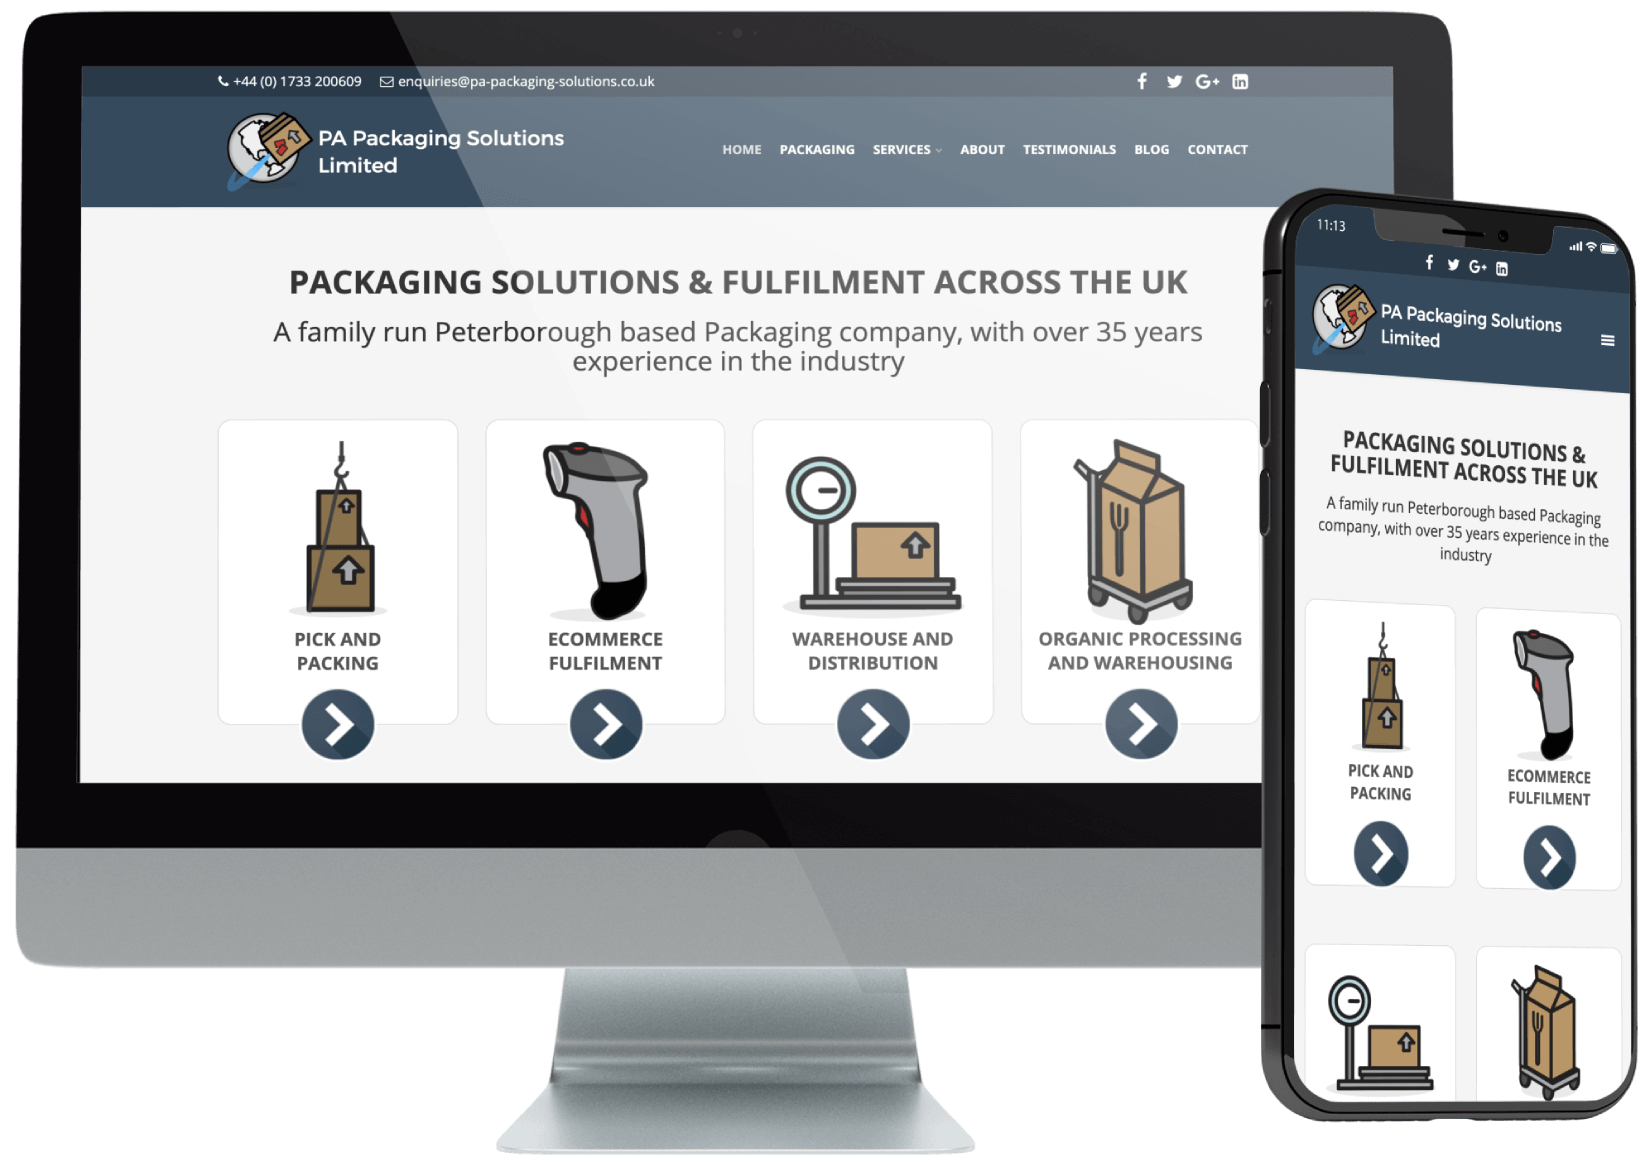 PA Packaging Solutions